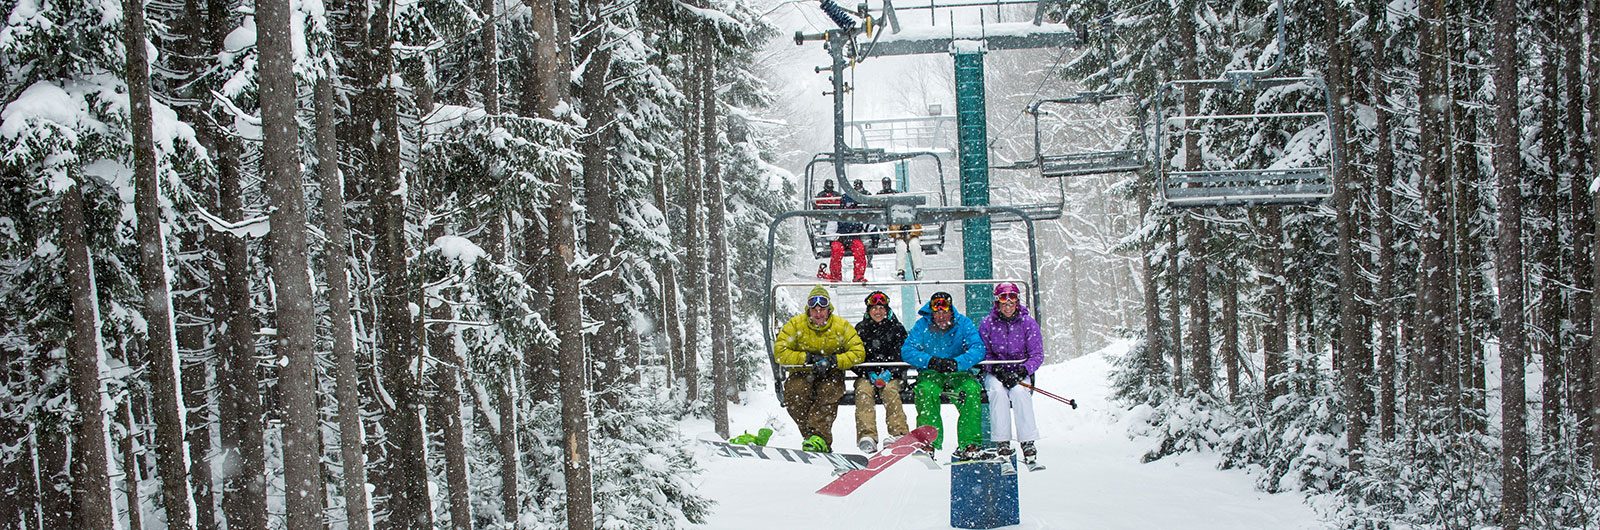 Four people riding up the Tannenabaum chair in winter